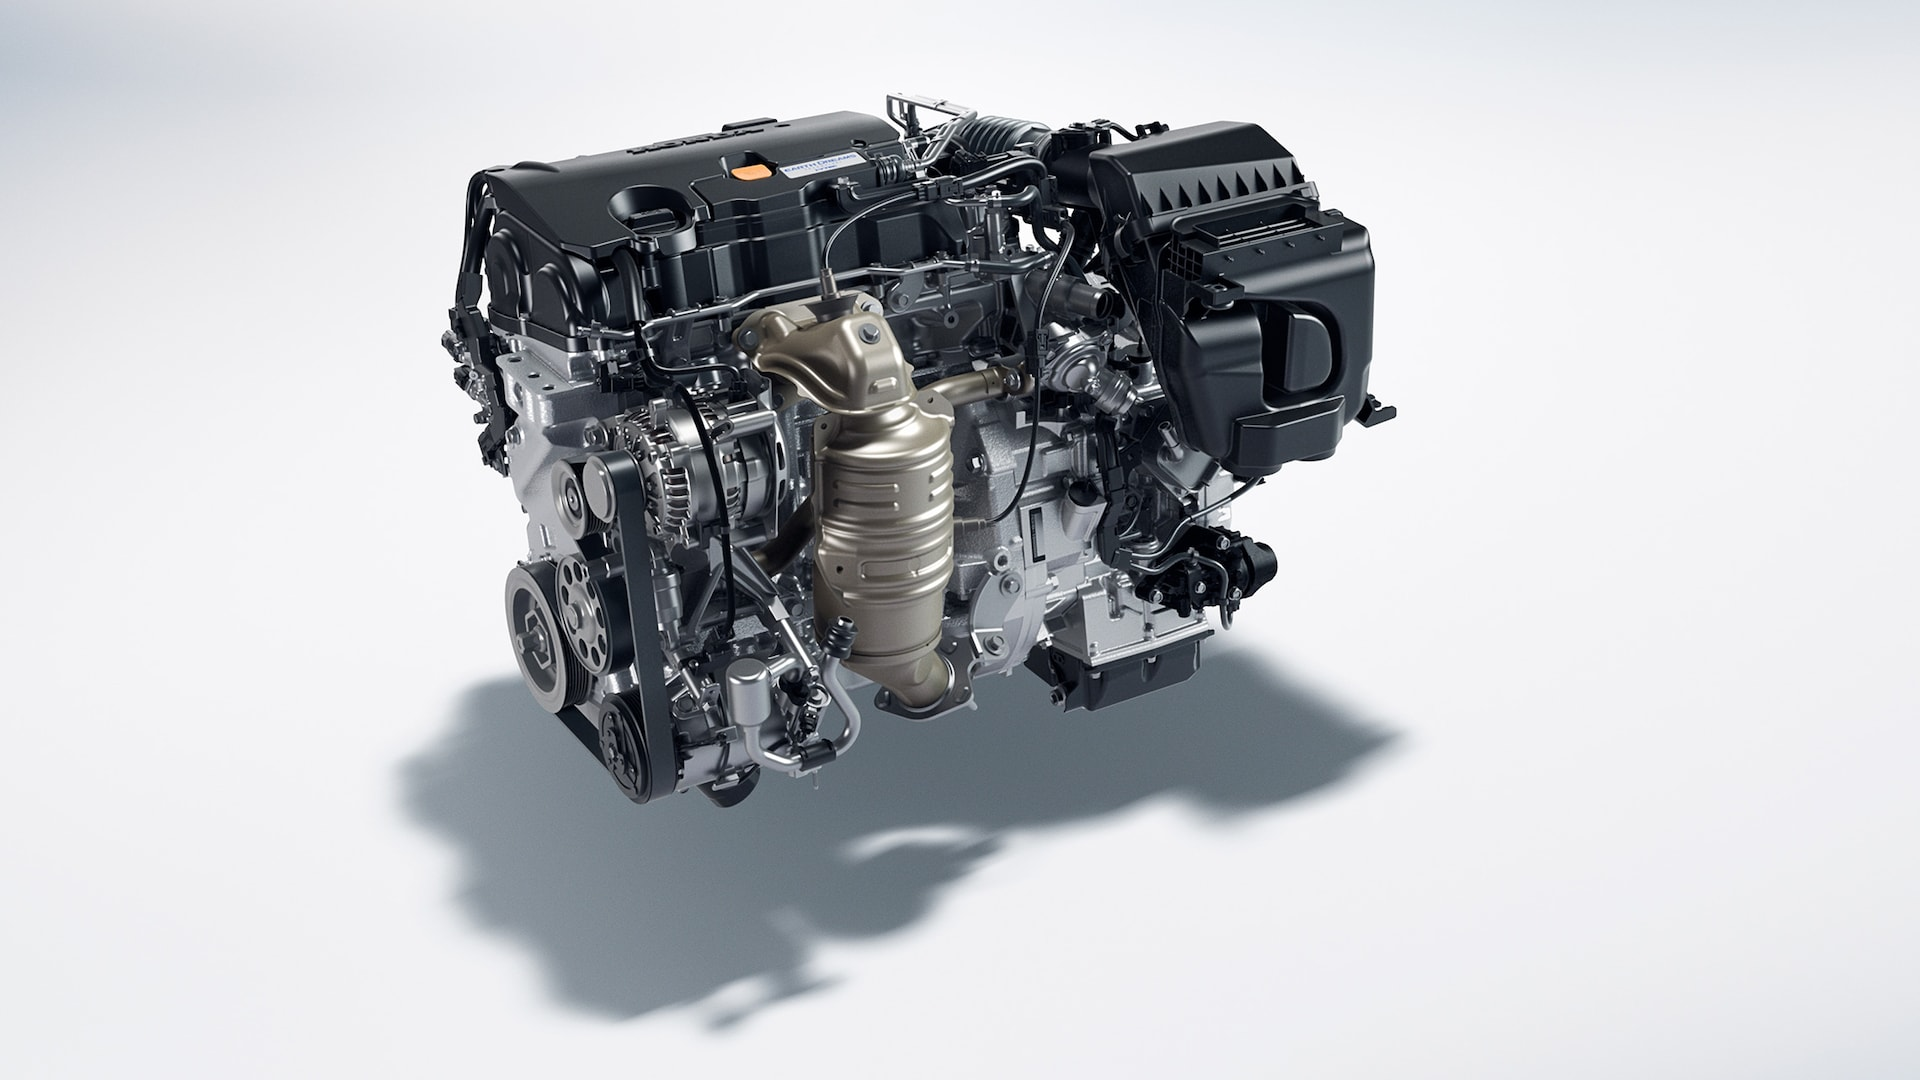 2.0-liter, 4-cylinder engine detail in the 2020 Honda Civic Coupe.